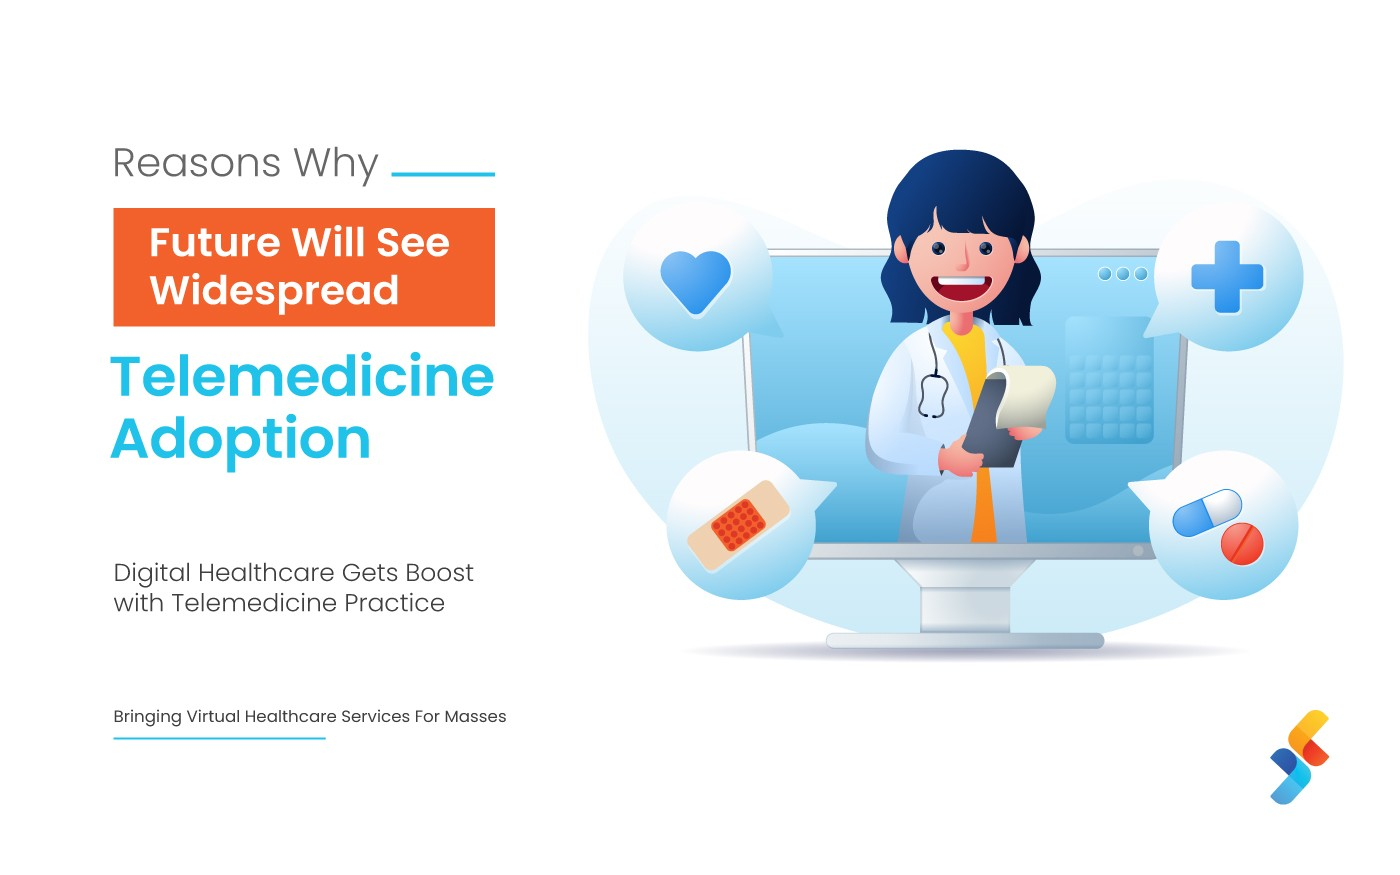 Reasons-Why-Future-Will-See-Widespread-Telemedicine-Adoption